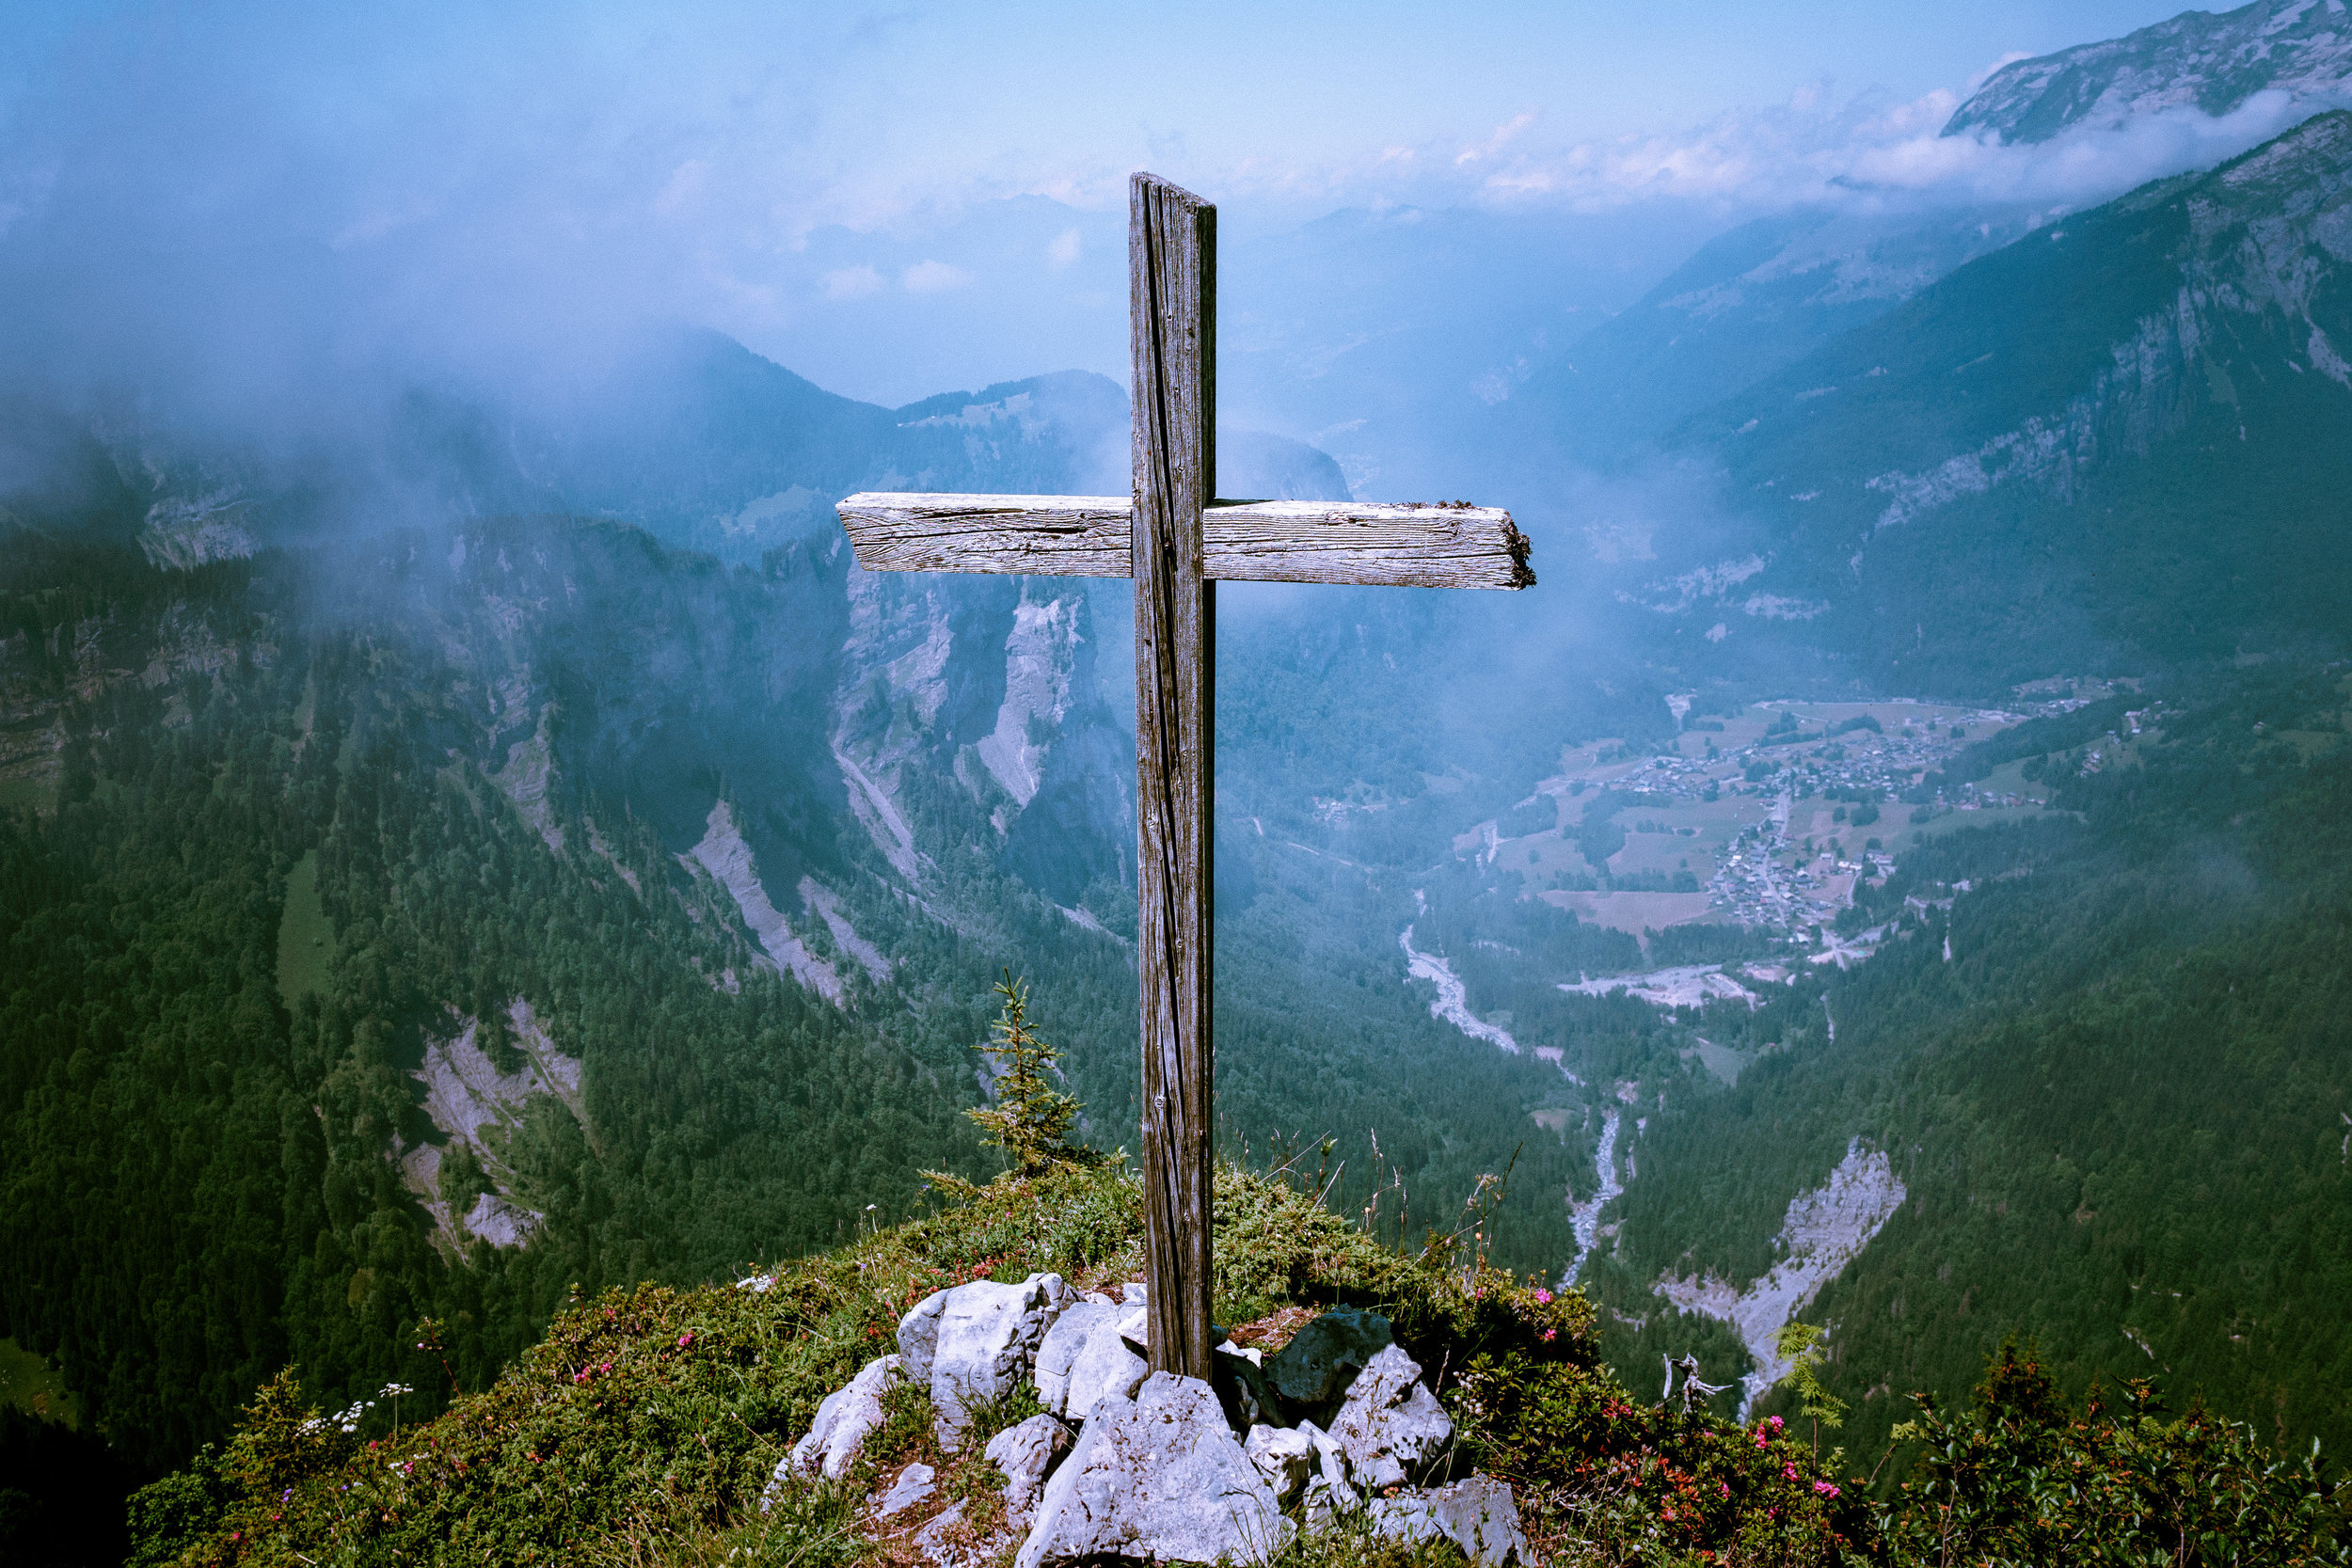 Mission Statement - To know God and make Him known